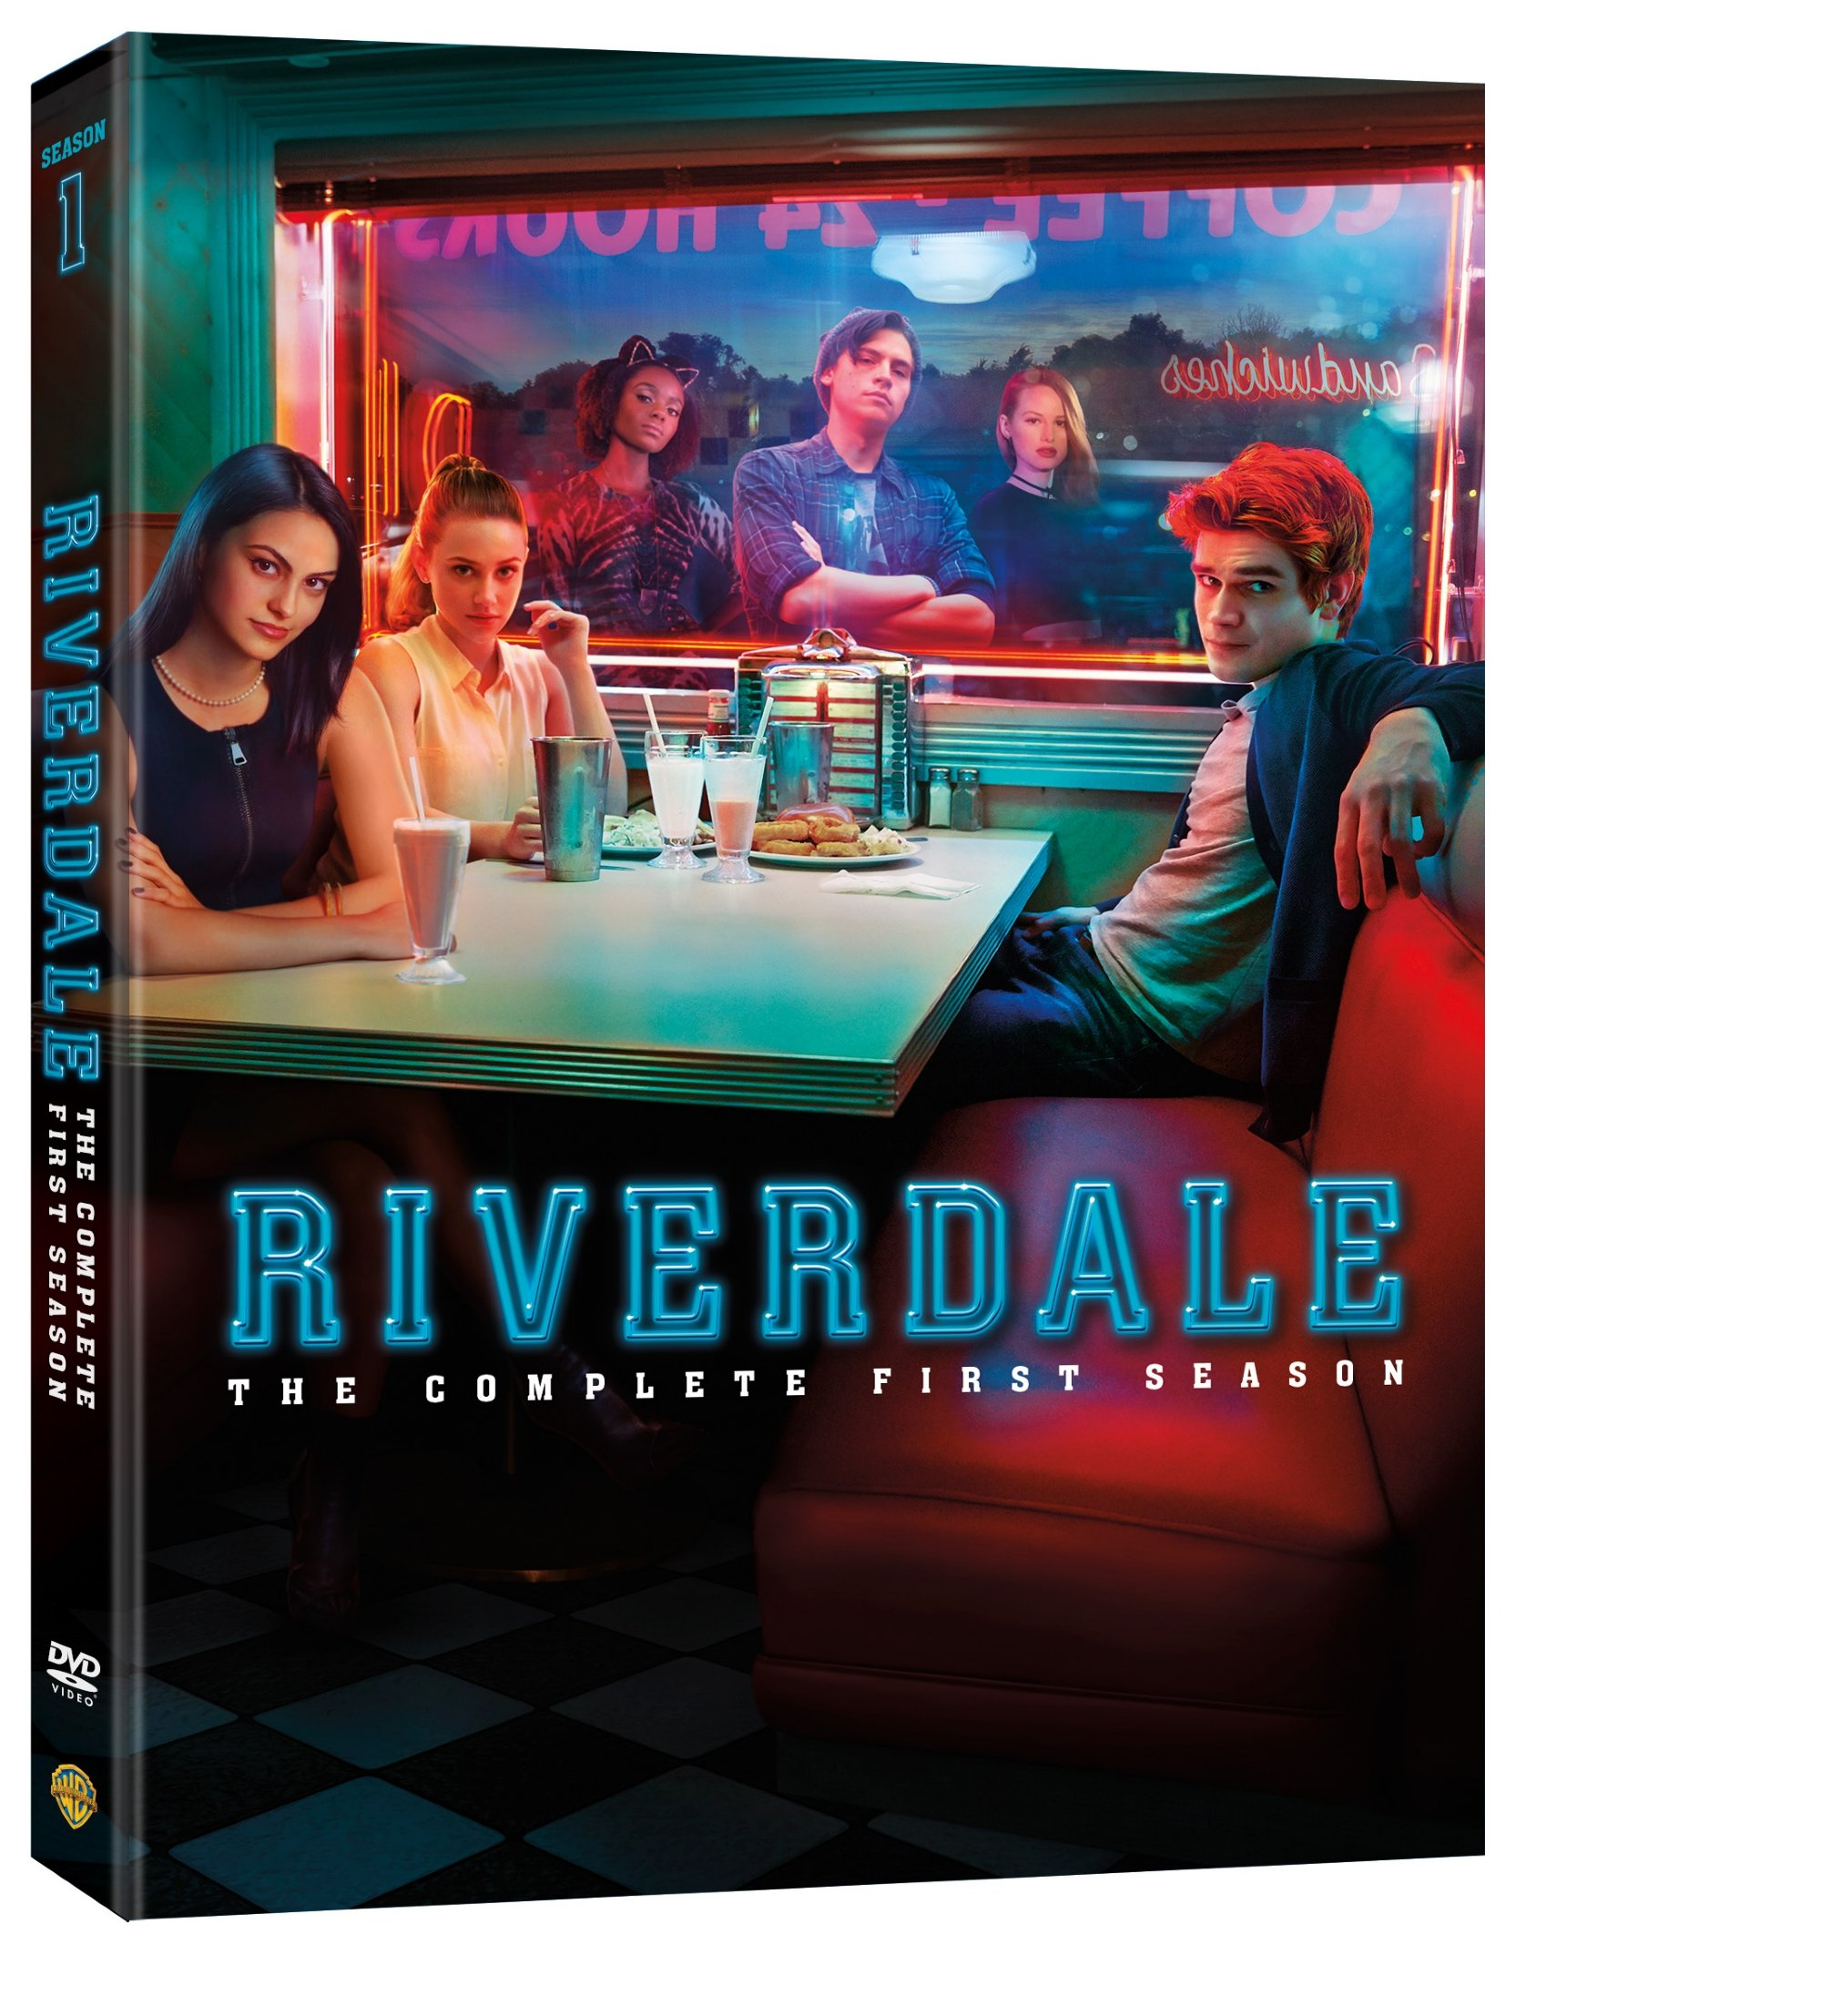 Riverdale S1 DVD1